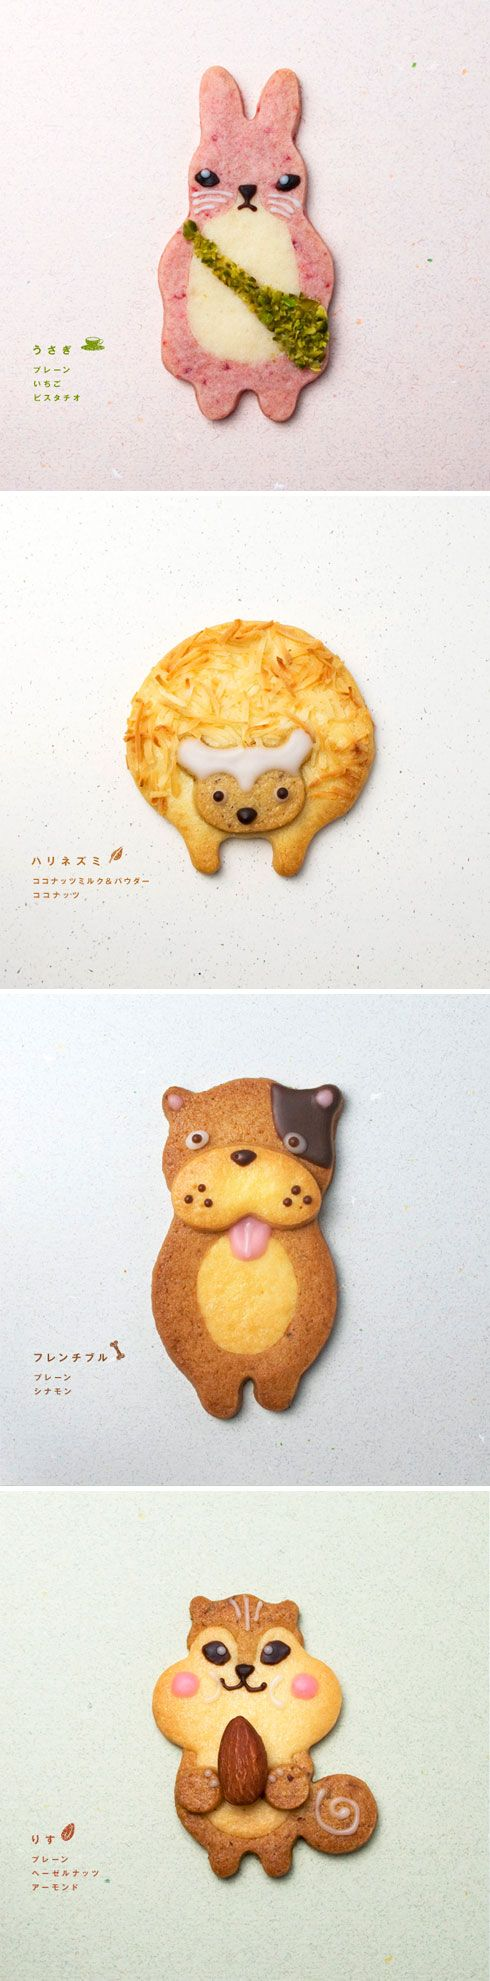 Cutest cookies on earth :D Henteco cookies